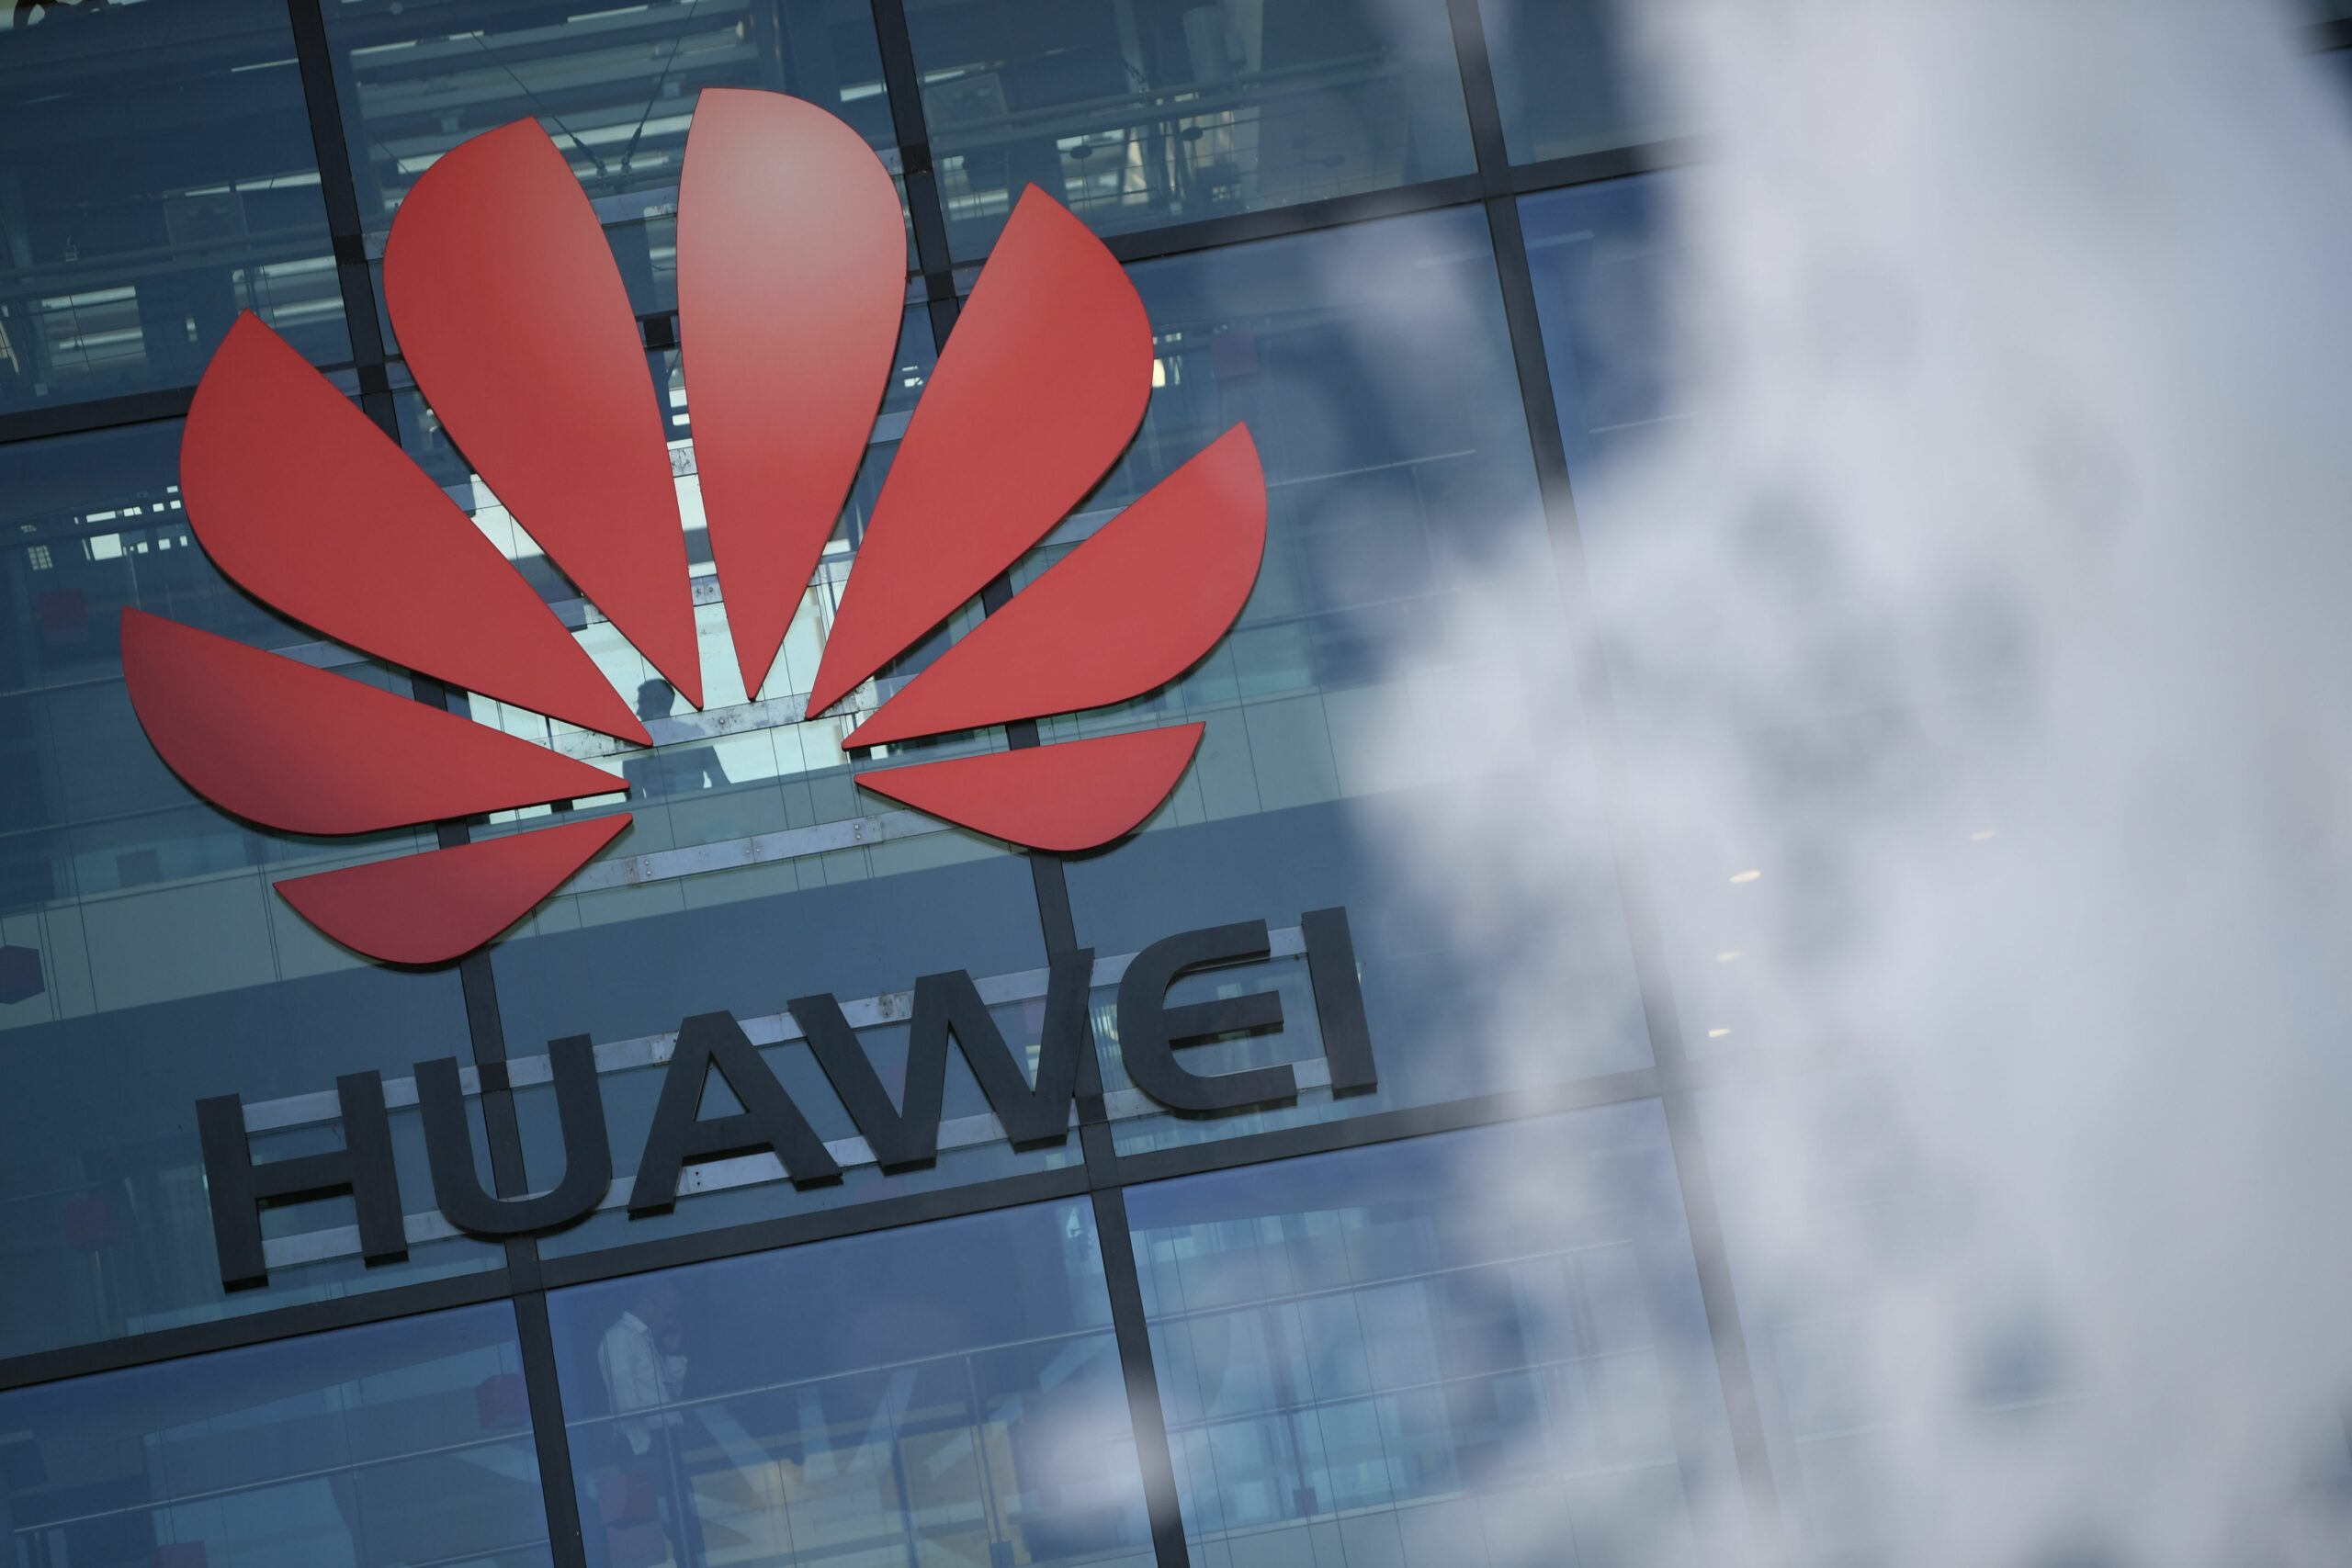 Huawei overtakes Samsung to be No. 1 smartphone maker many thanks to China